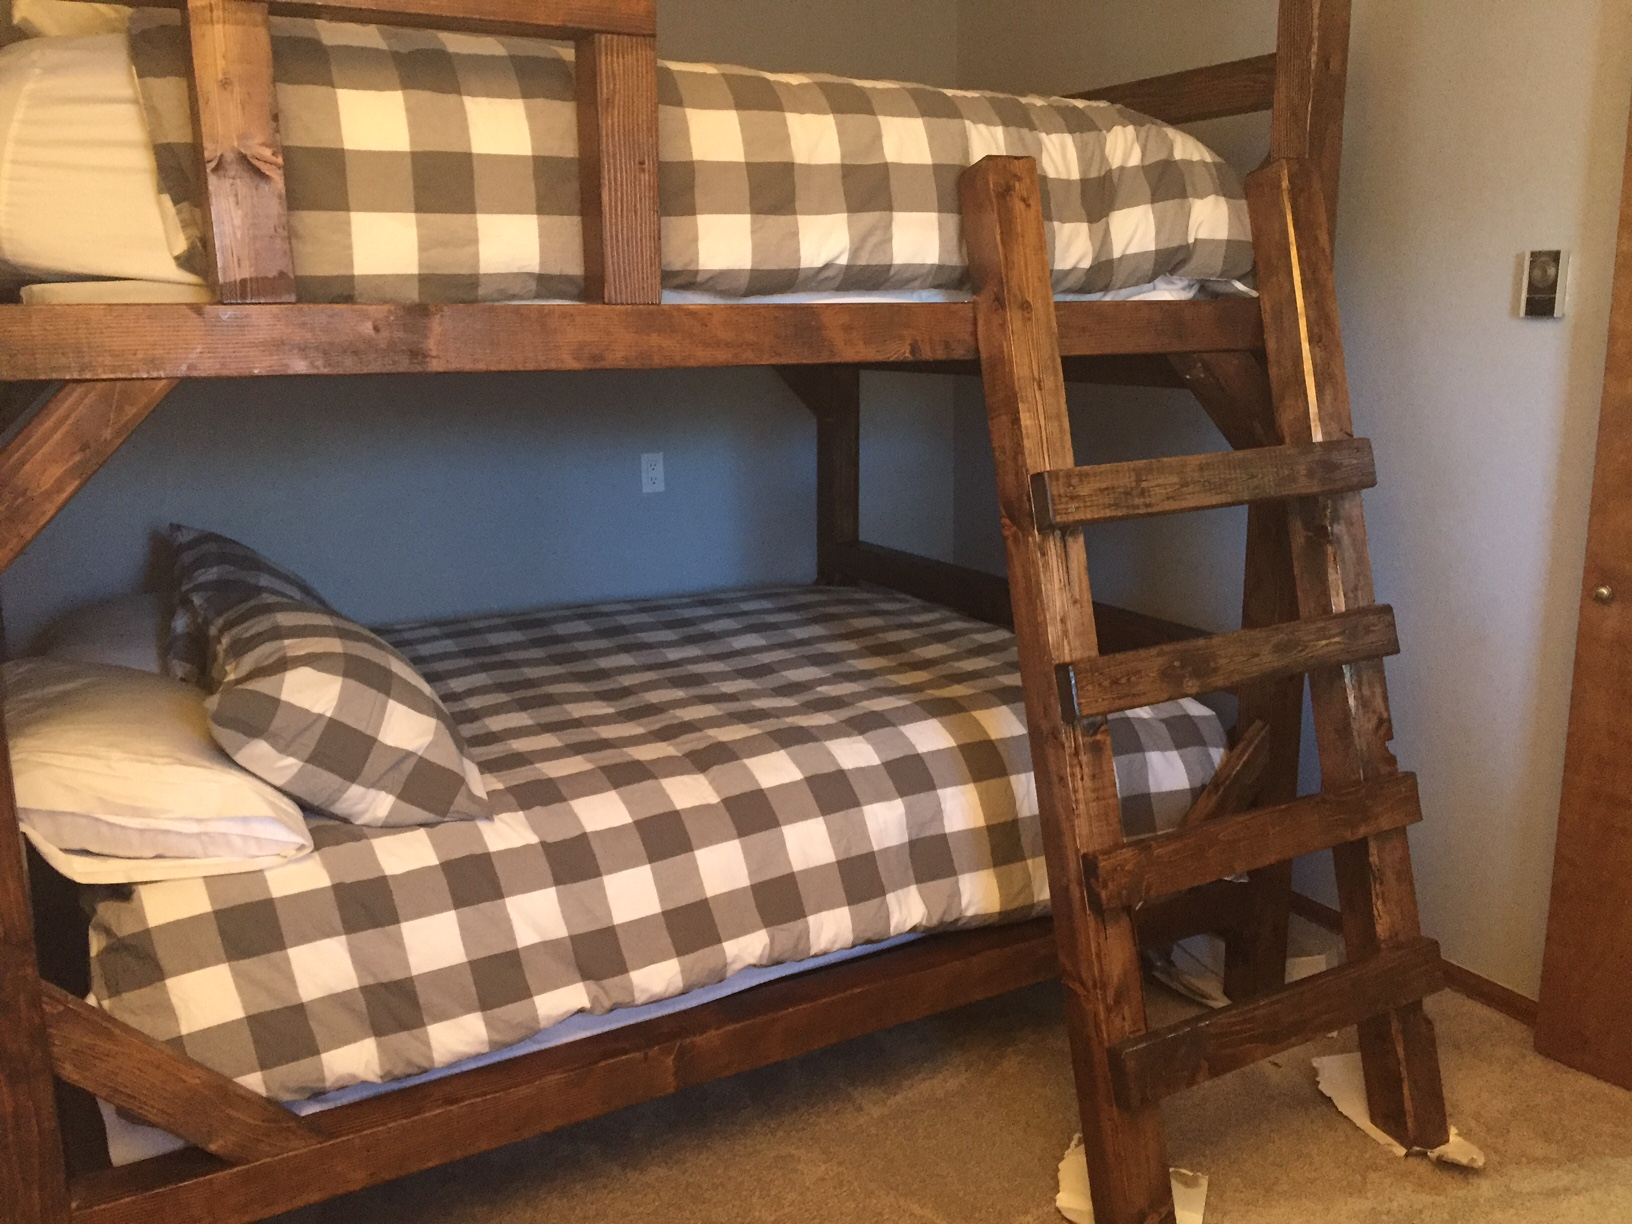 Adult Rustic Timber Bunk Beds Adult Strong Bunk Beds For